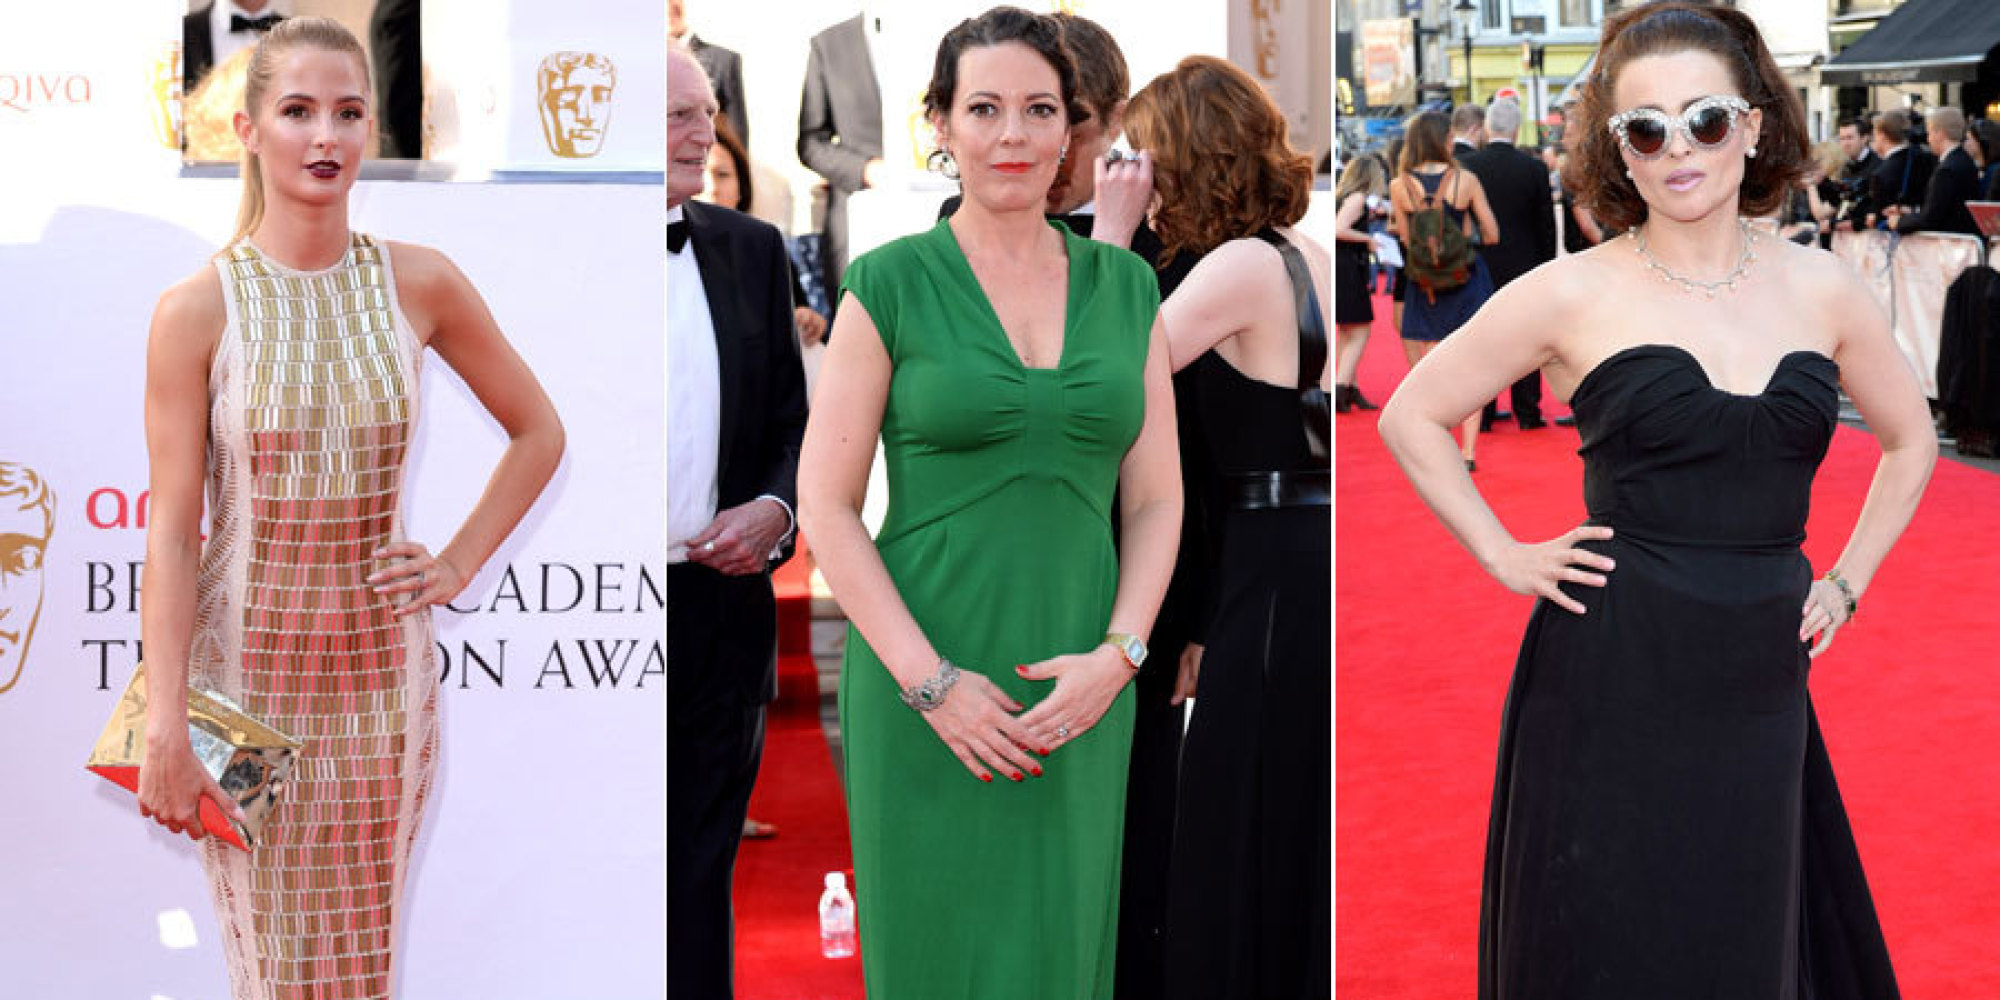 Baftas: Baftas 2014 Red Carpet Pictures: Best And Worst Dressed